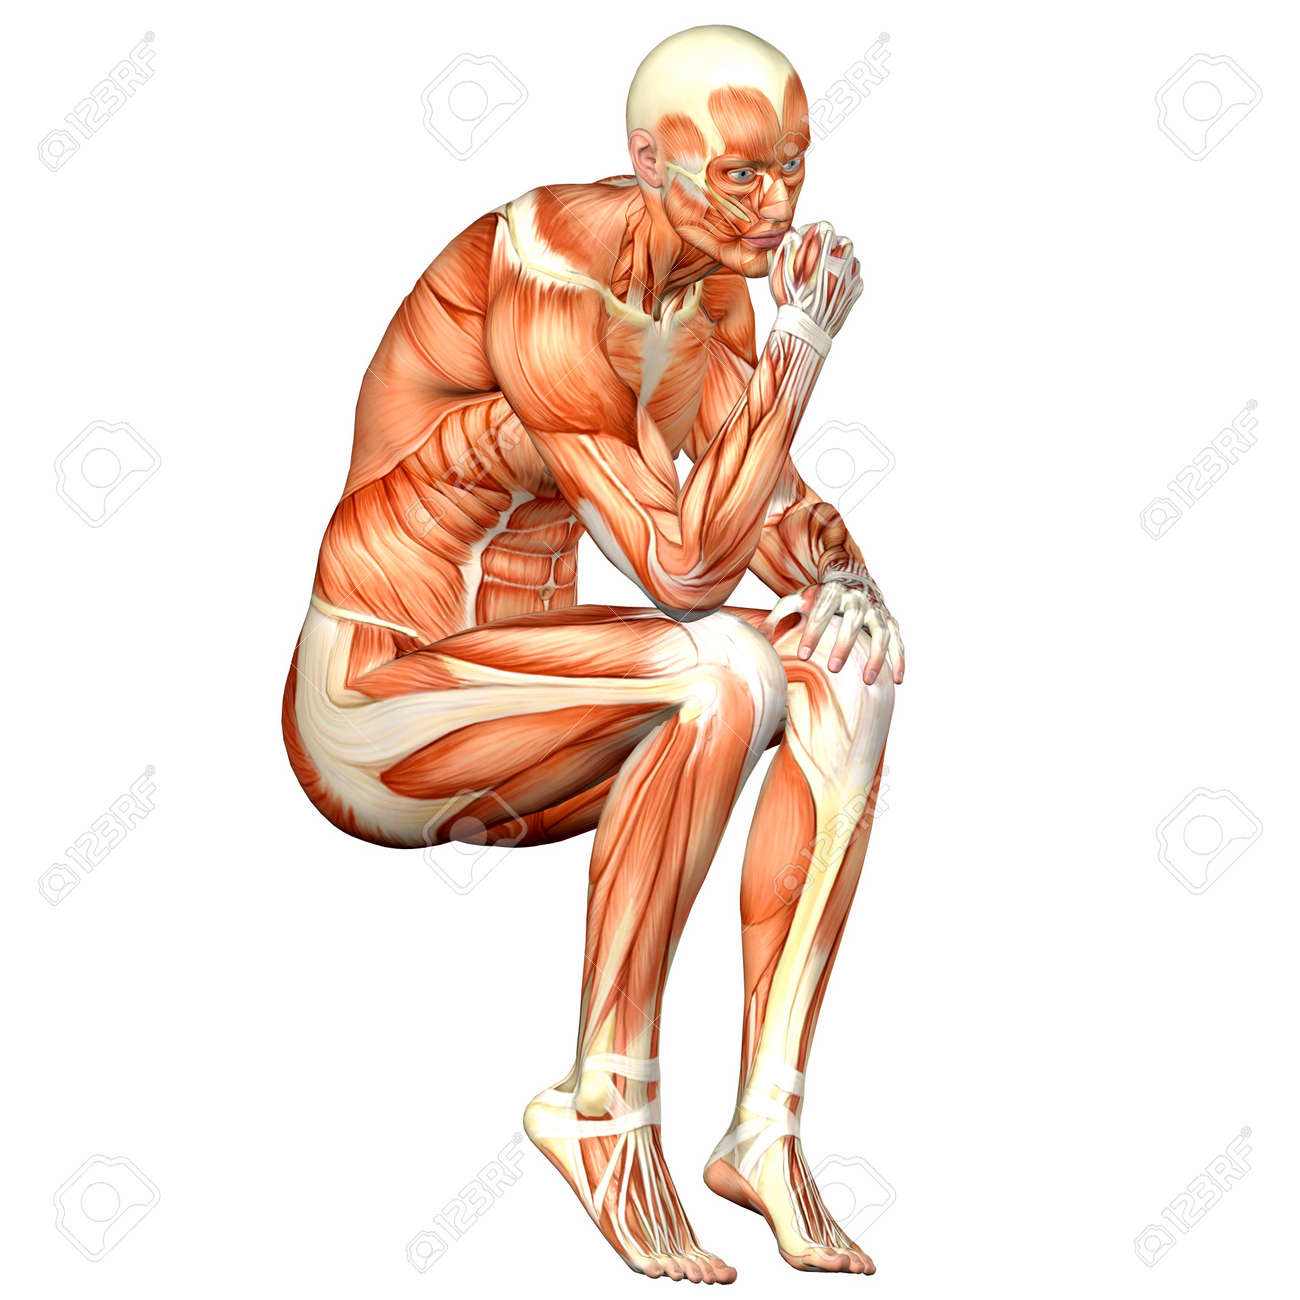 Illustration Of The Anatomy Of The Male Human Body Isolated On